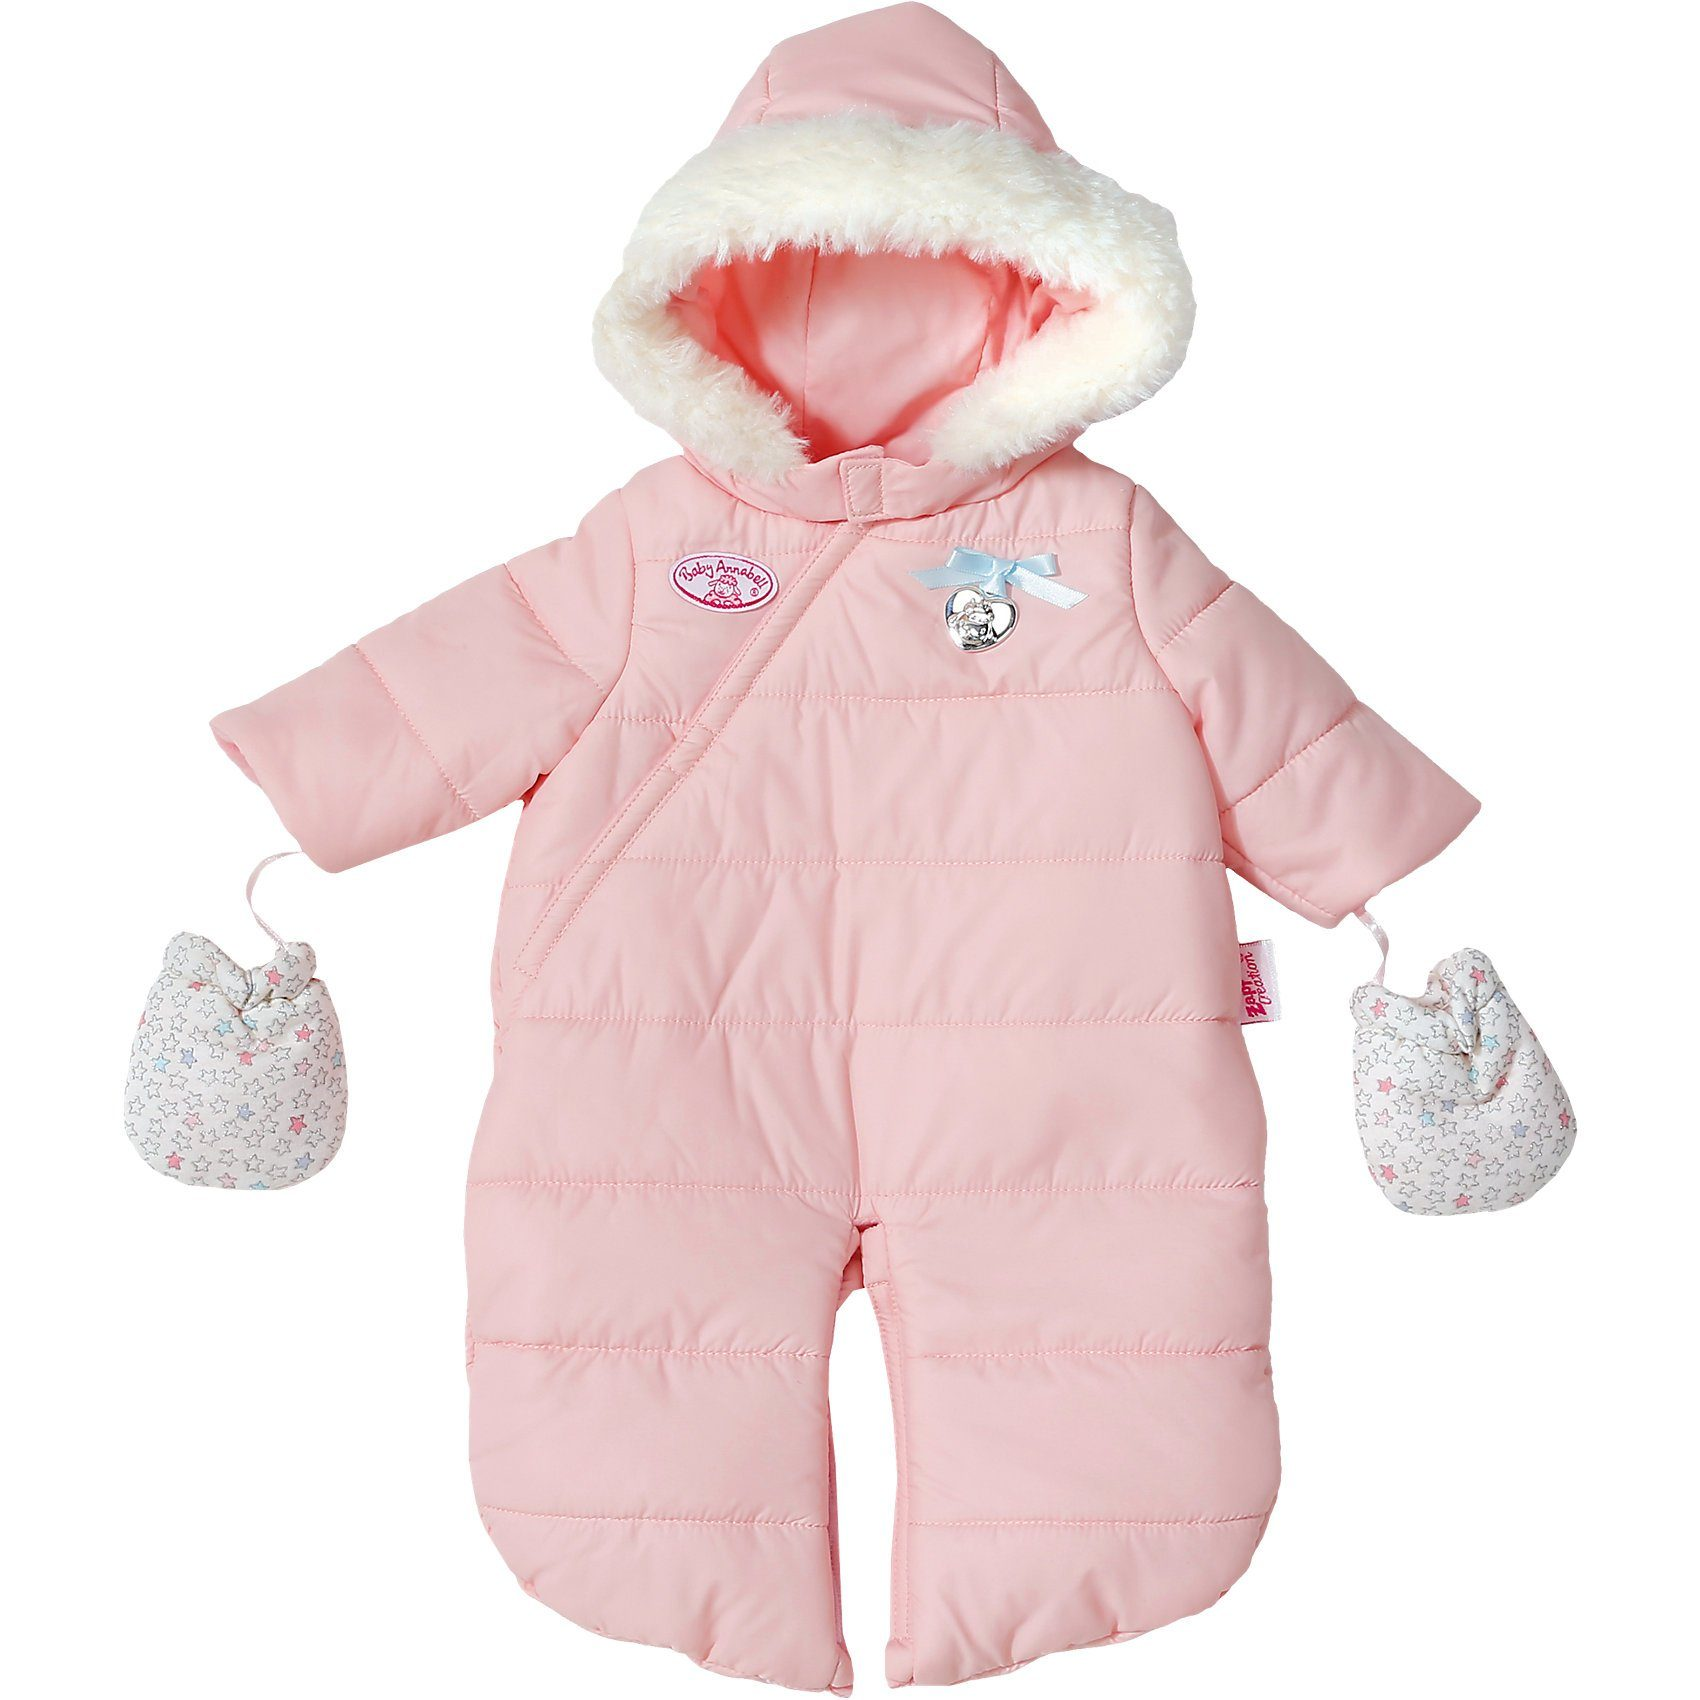 Zapf Creation Baby Annabell® Deluxe 2-in-1 Winter Set, 46cm